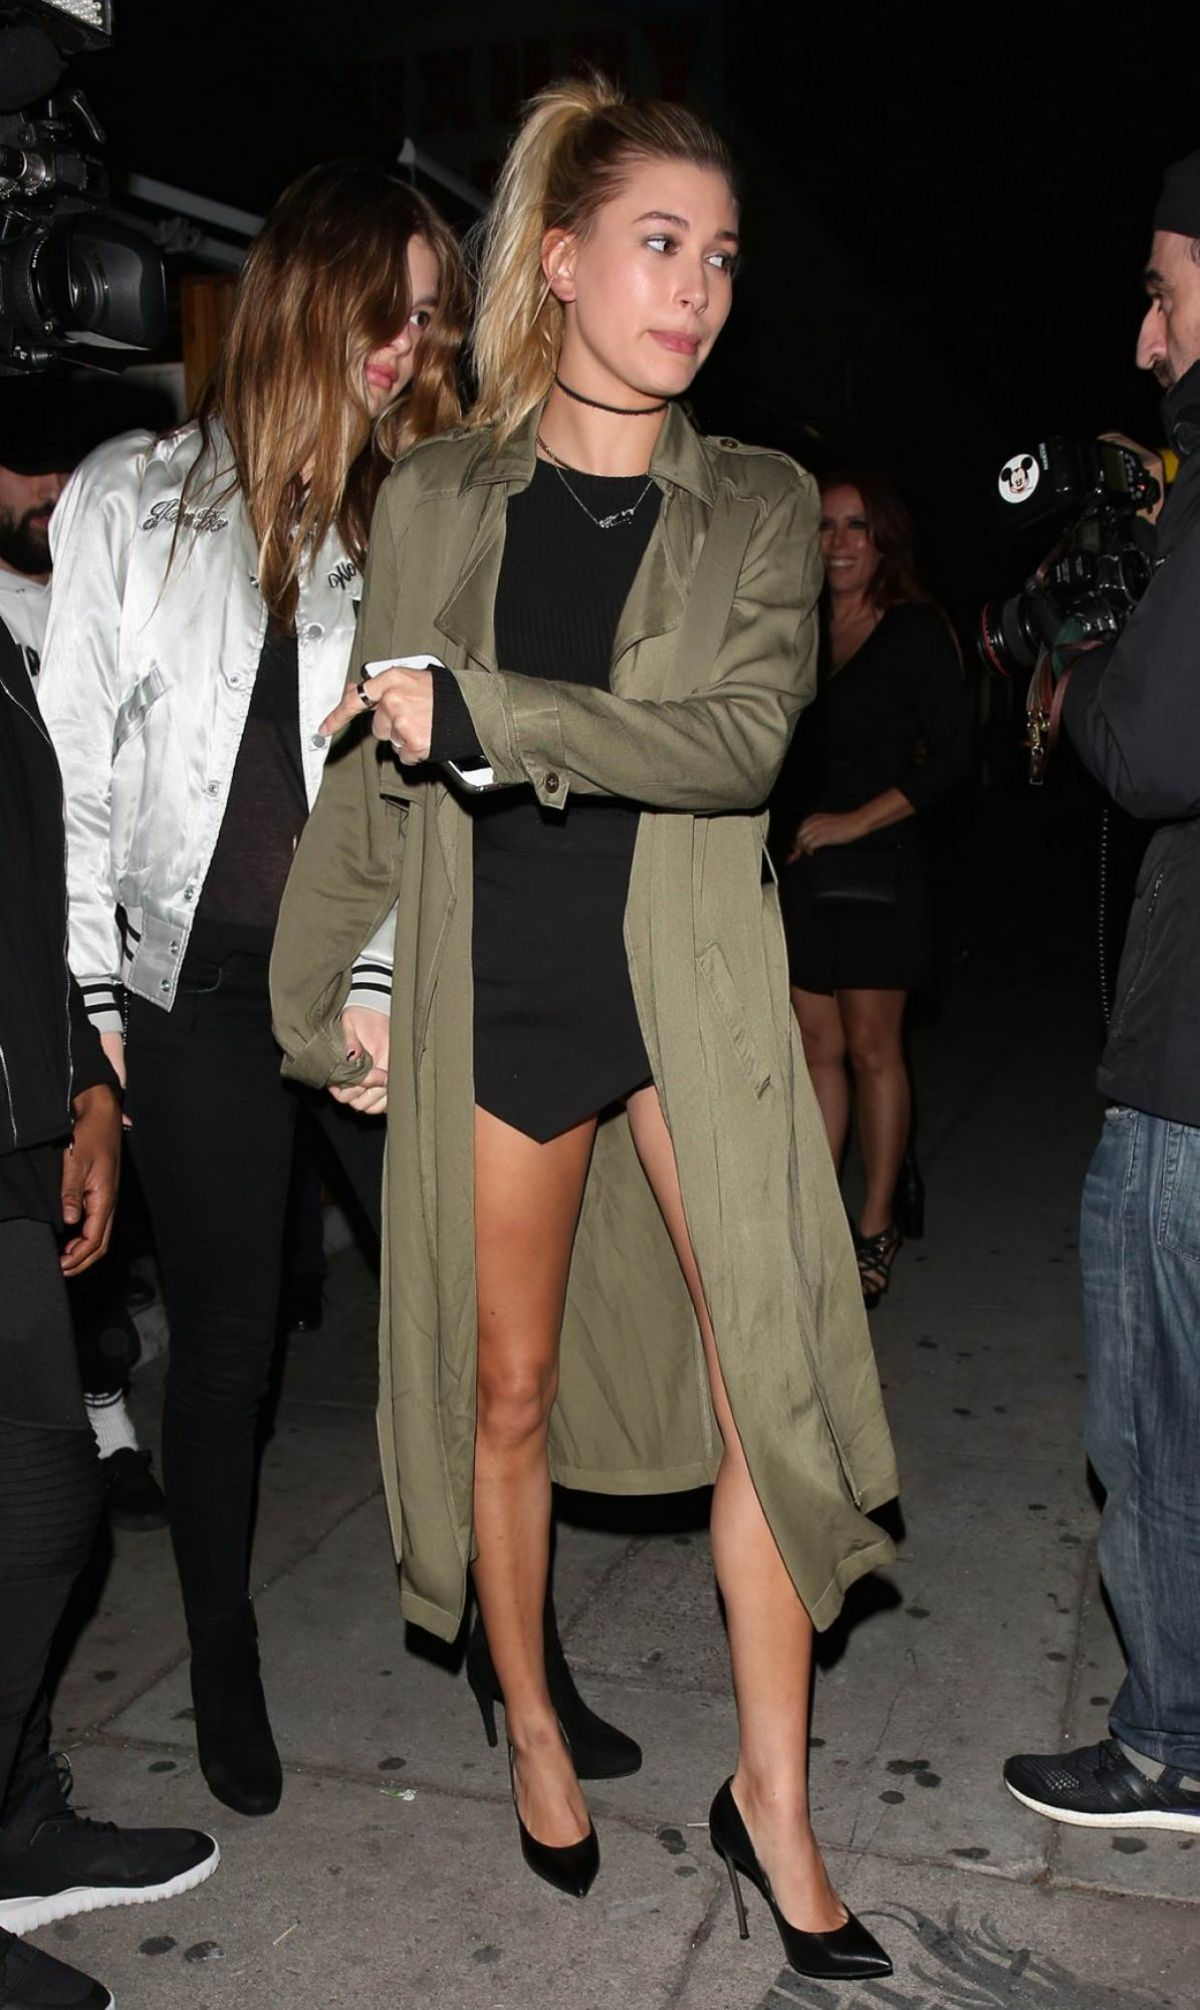 Hailey Baldwin Leaving The Nice Guy In La Celebzz